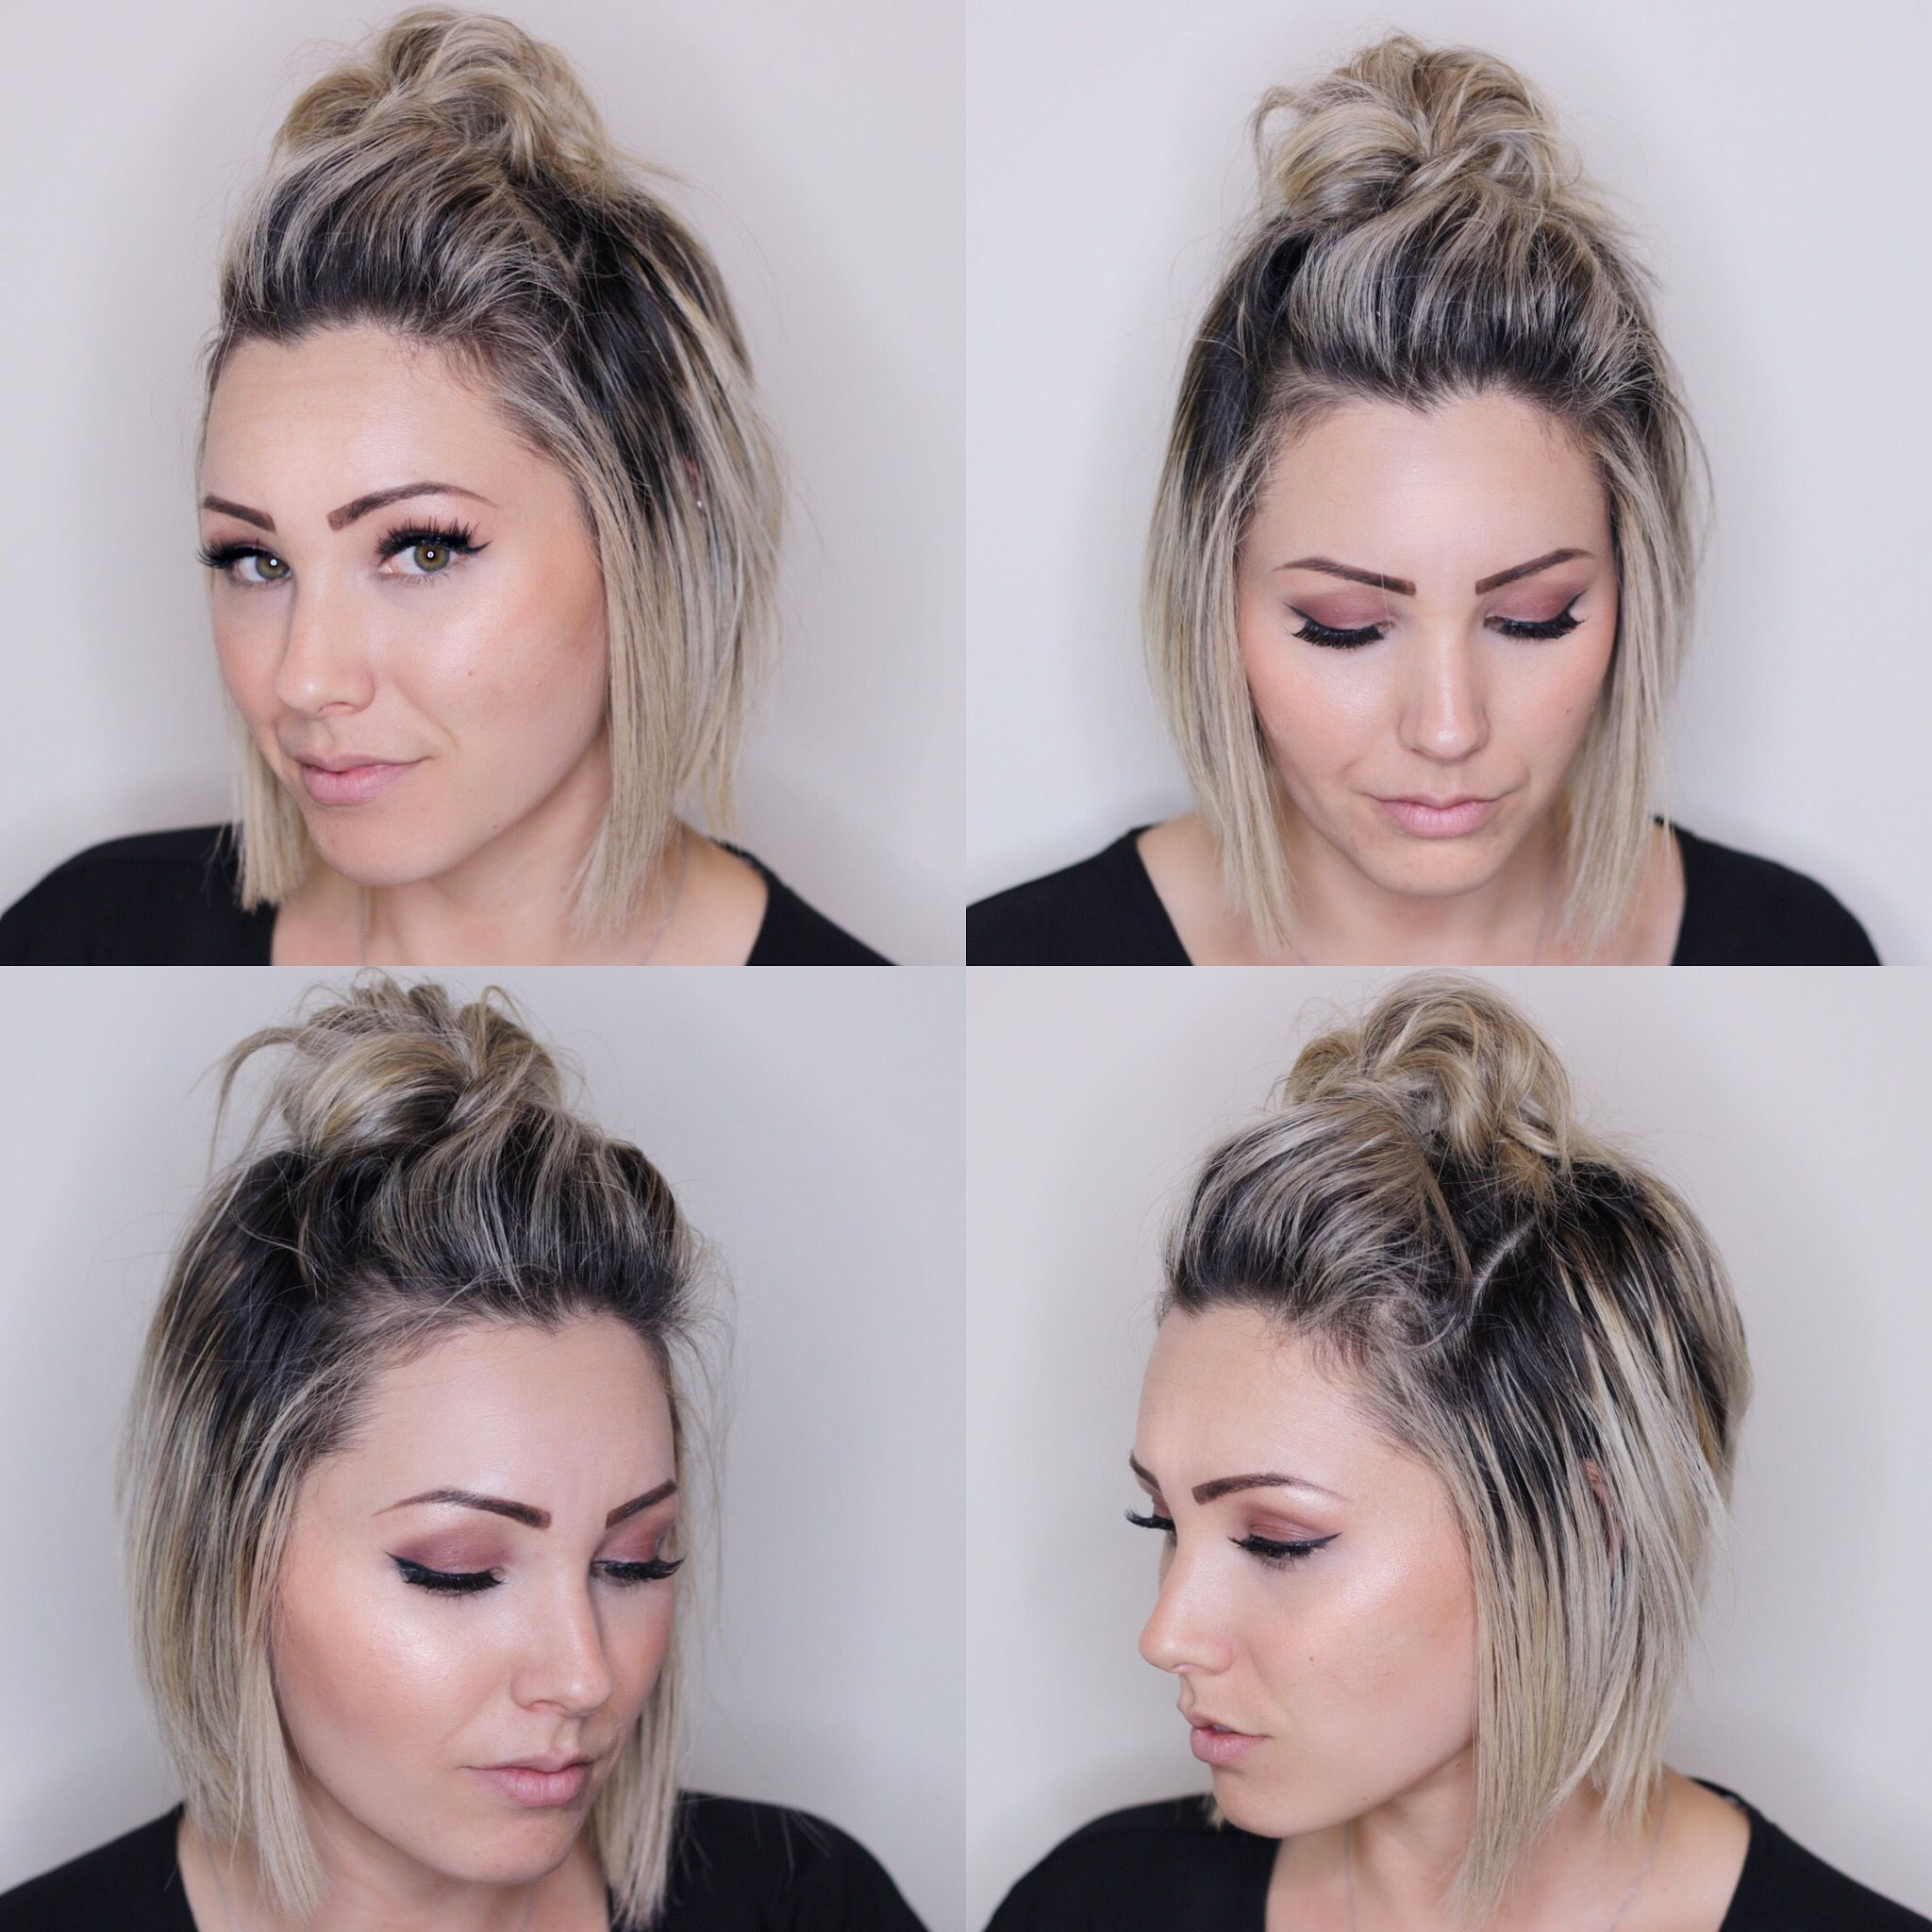 Top Knot For Short Hair Short Hairstyle Soft Bob Haircut Short Hair Styles Short Hair Updo Hair Knot